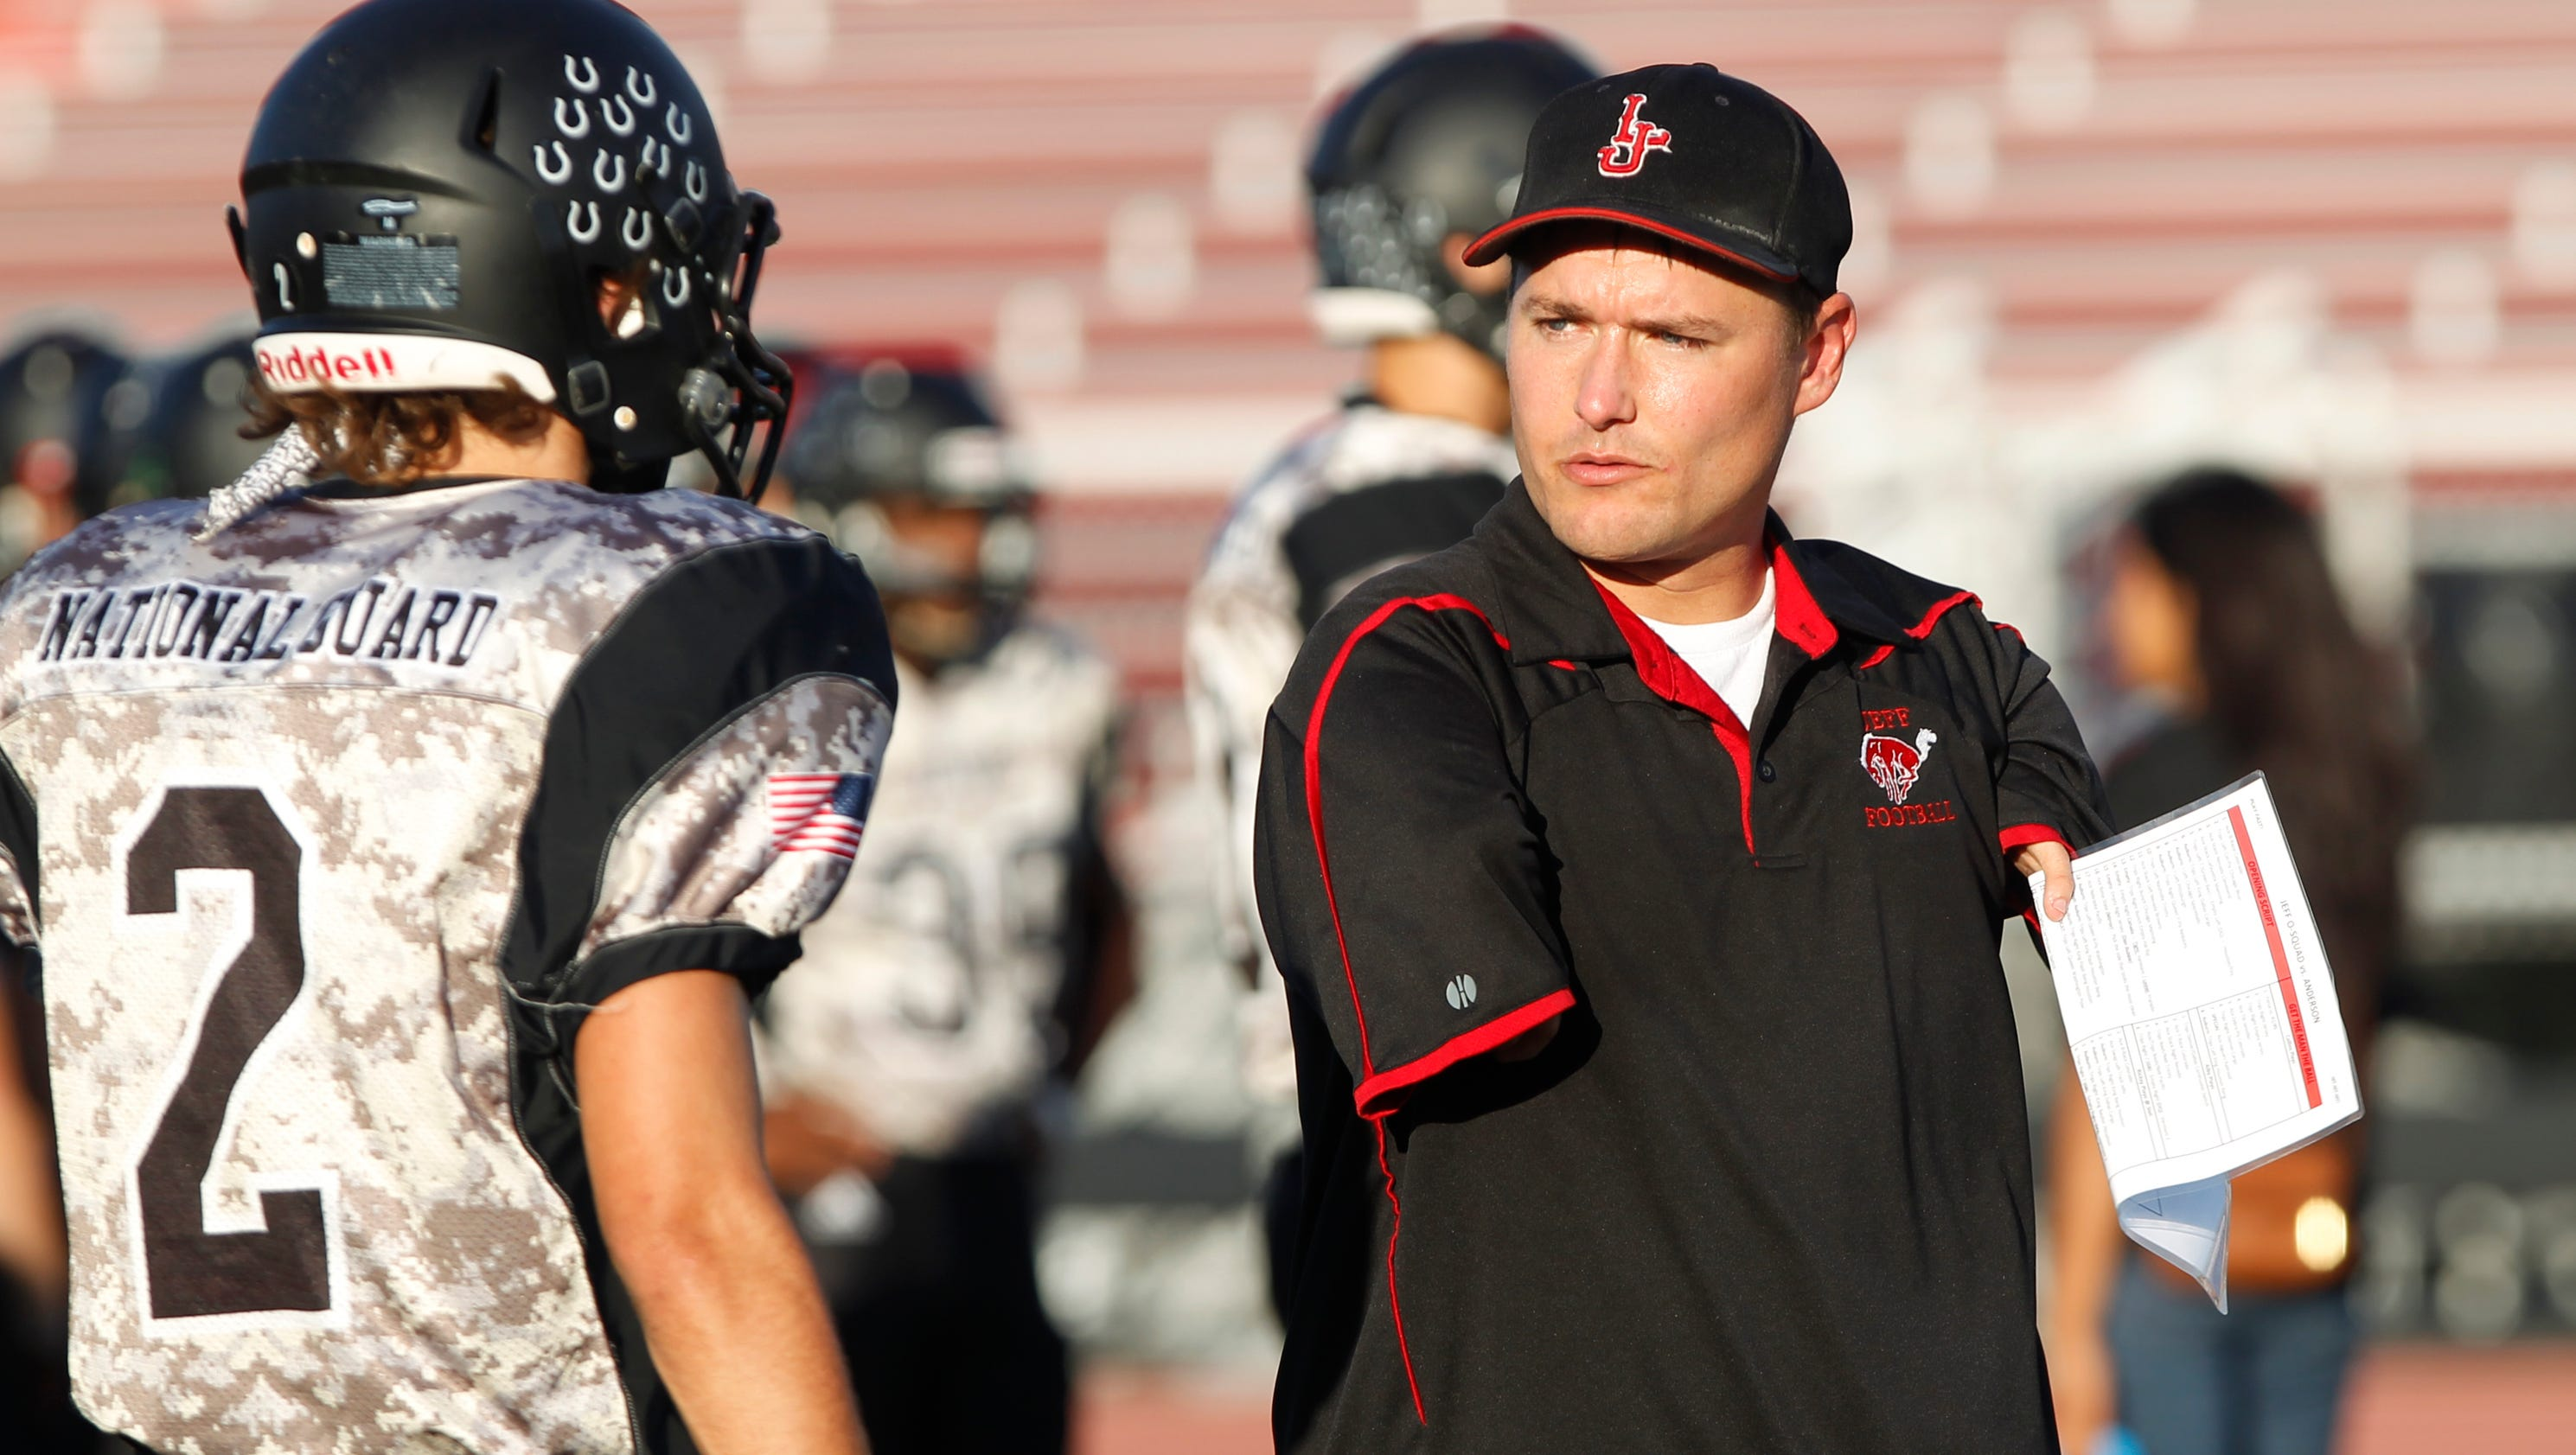 Jeff receivers coach share special bond for Lafayette cds 30